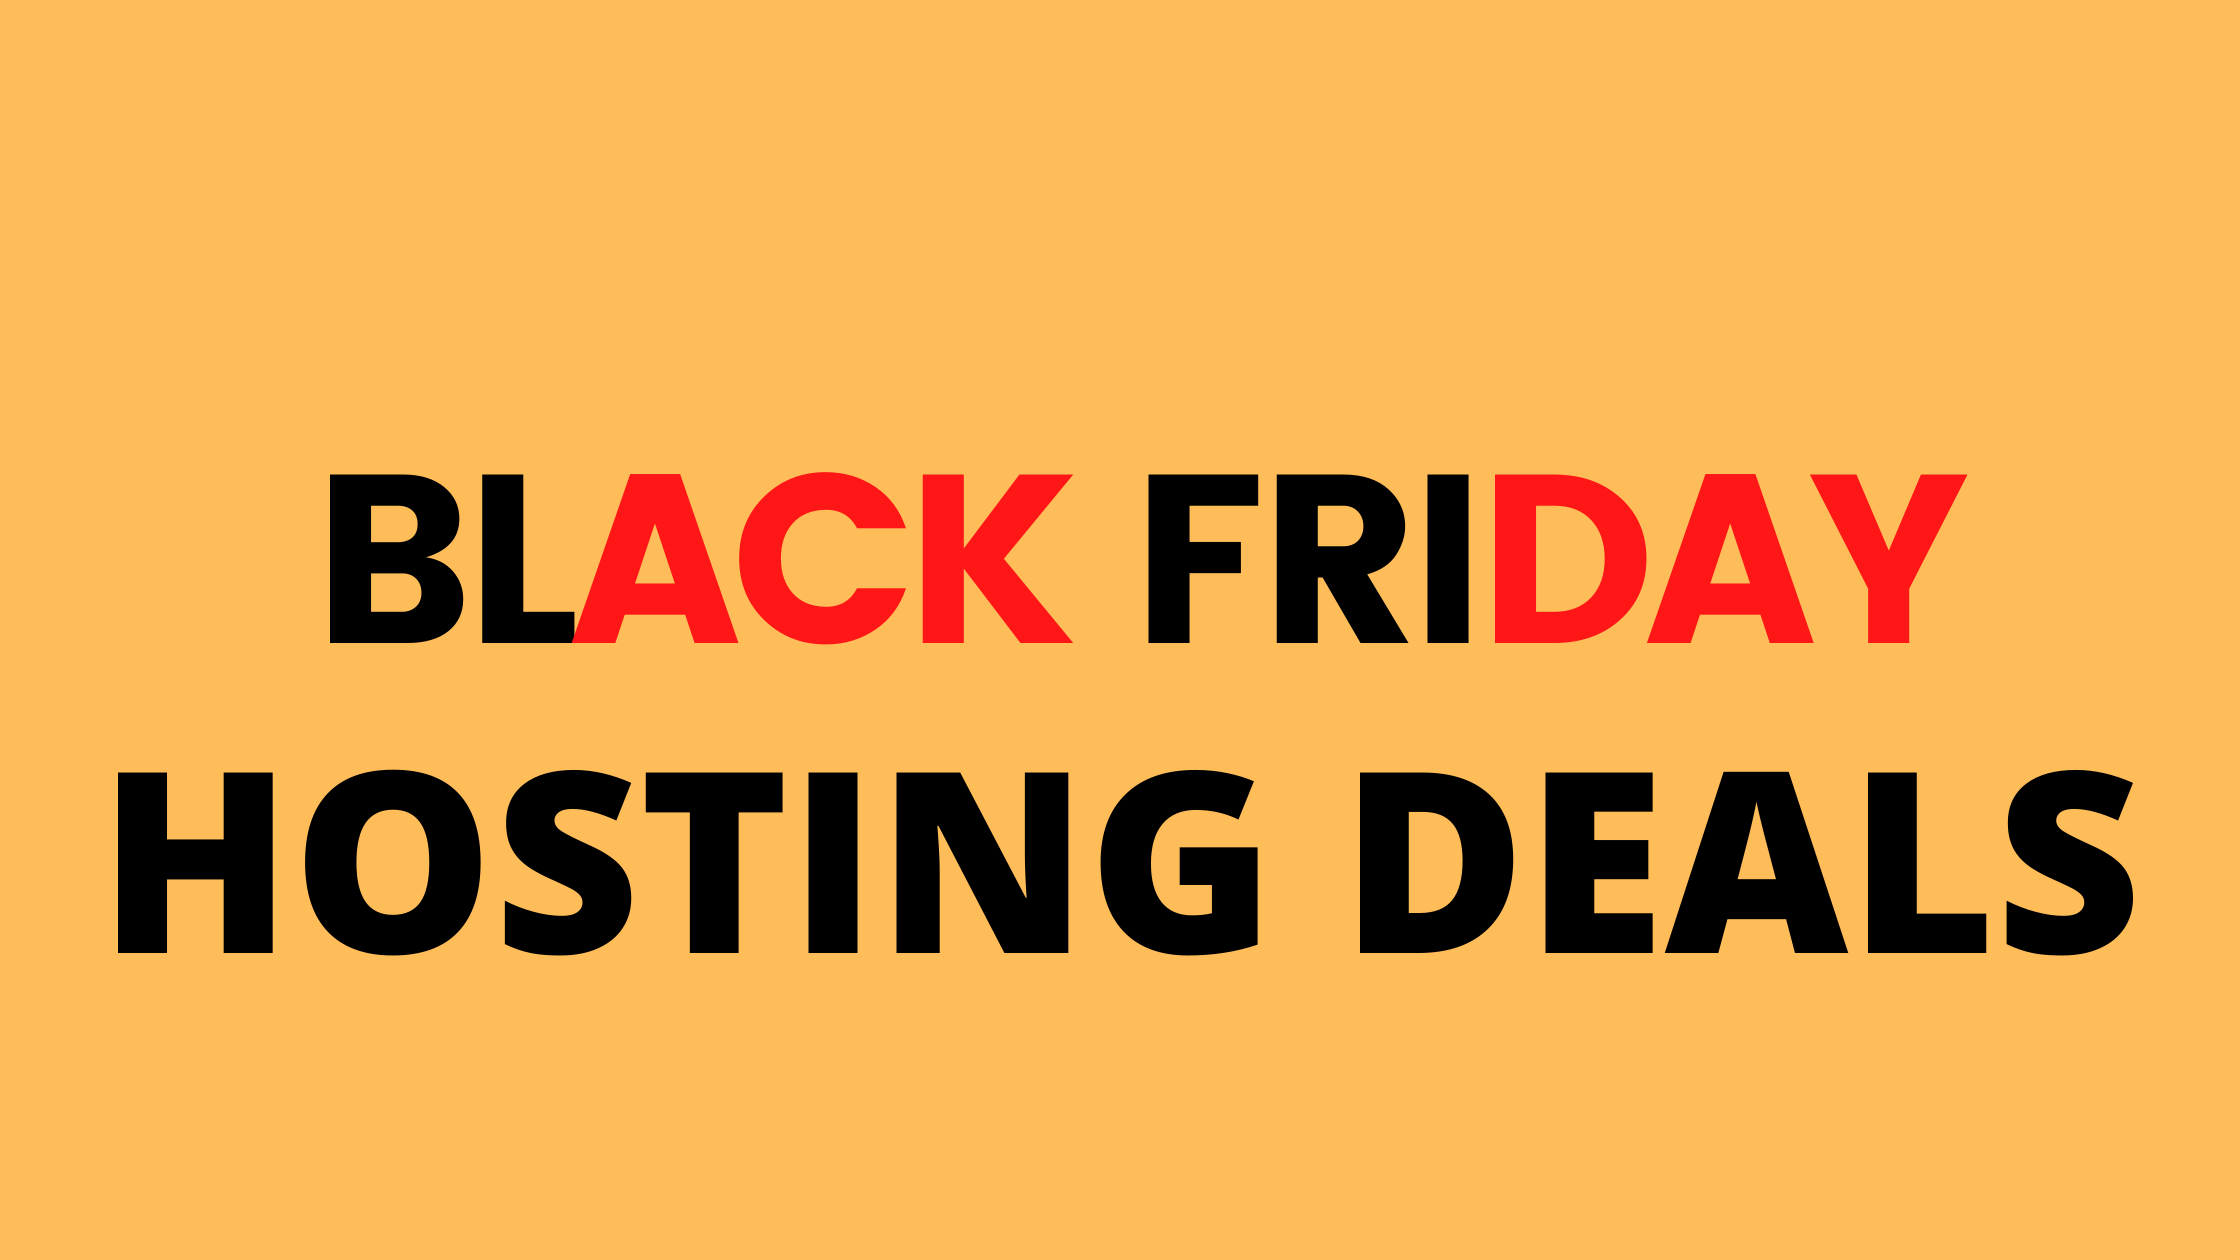 BEST HOSTING BLACK FRIDAY DEALS 2020